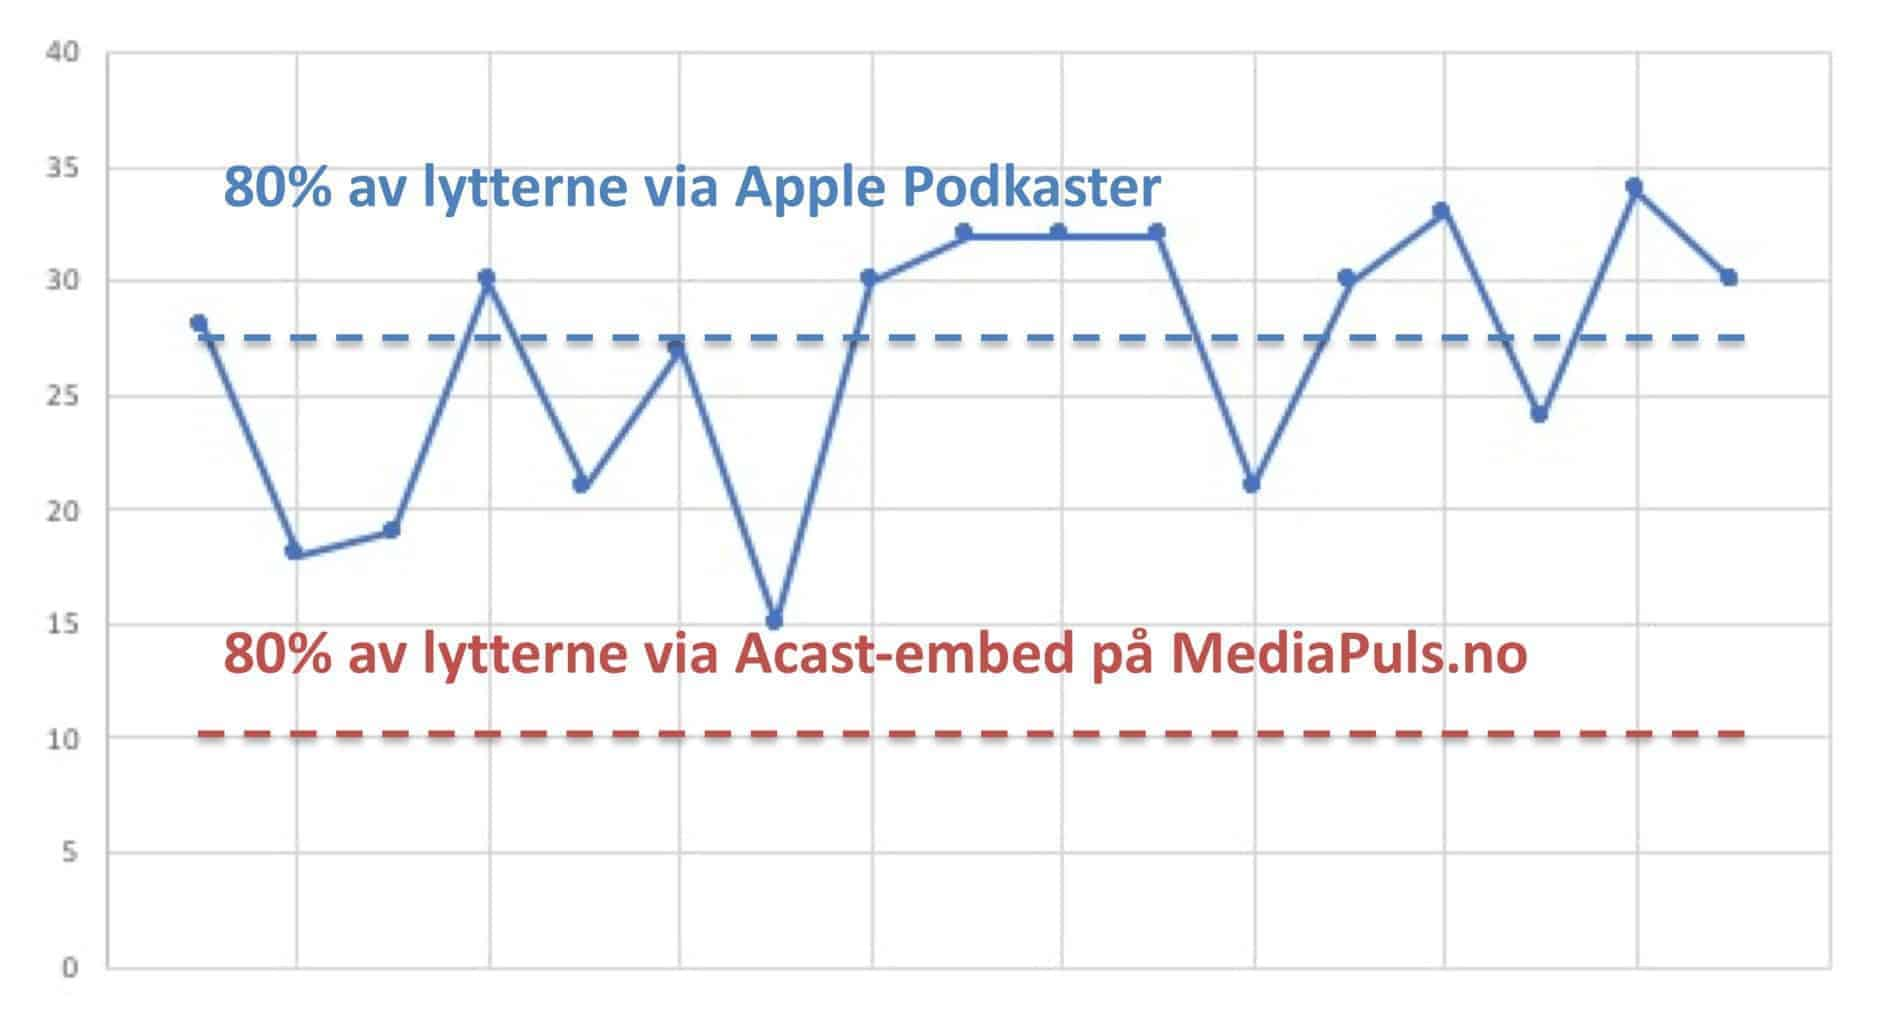 Apple Podkaster